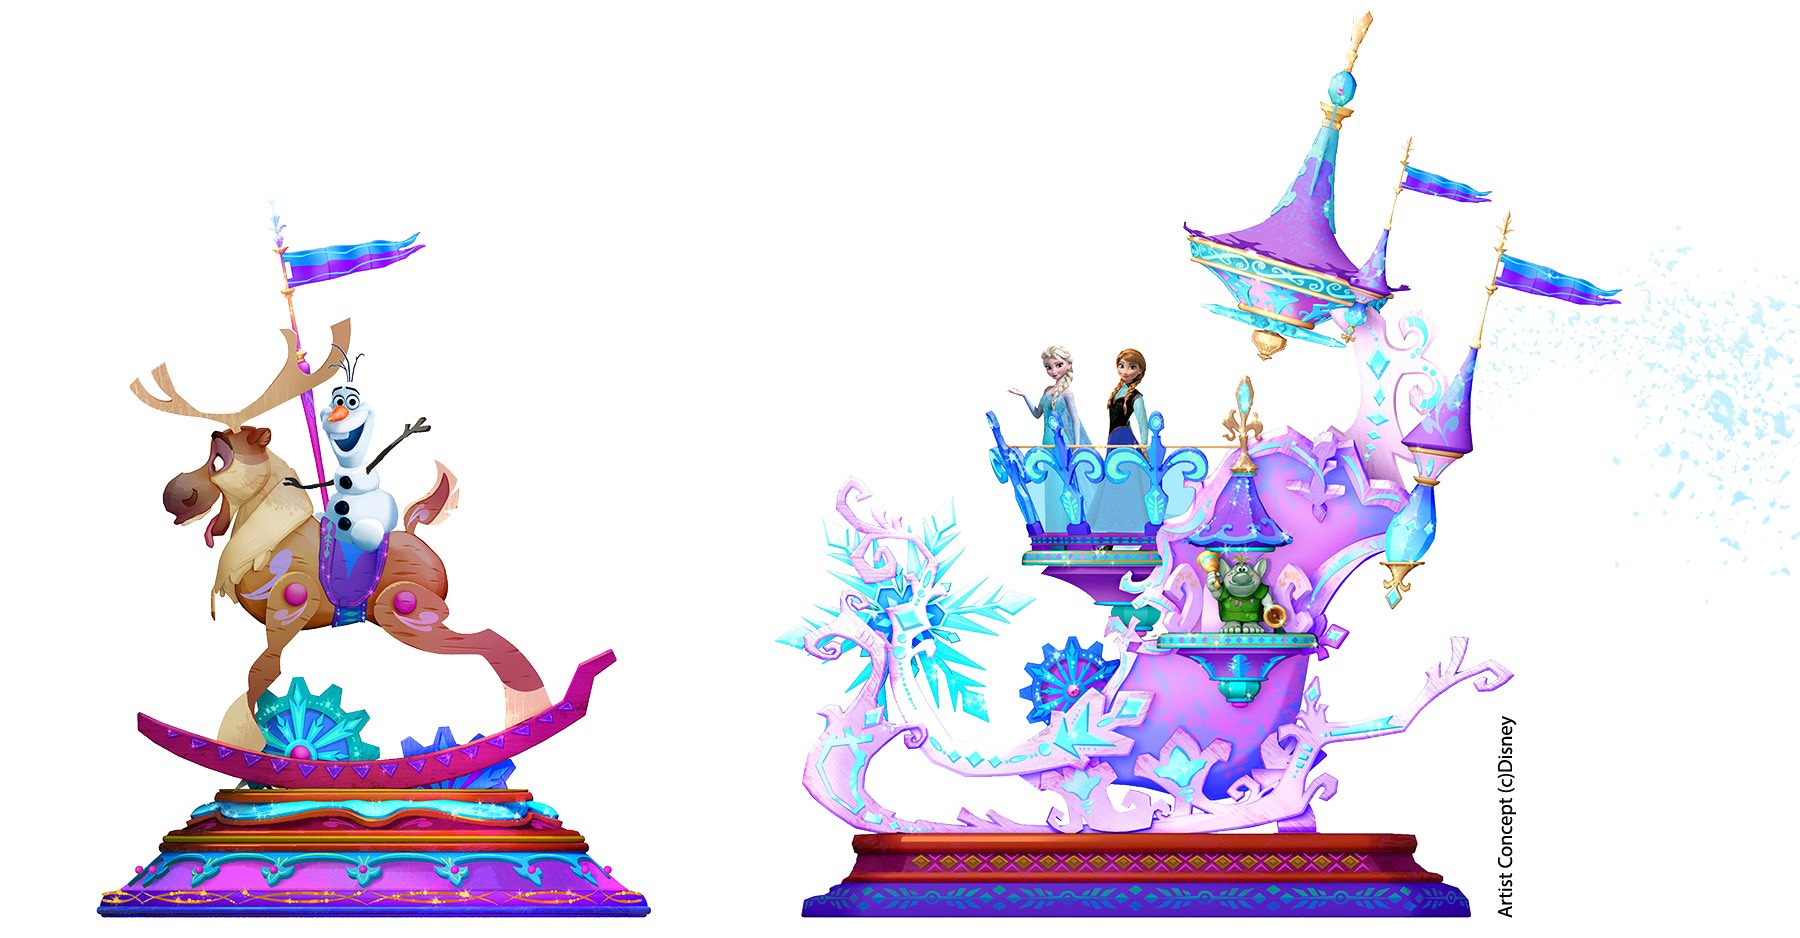 Disneyland Paris Accidentally Tweets Artwork Of Frozen